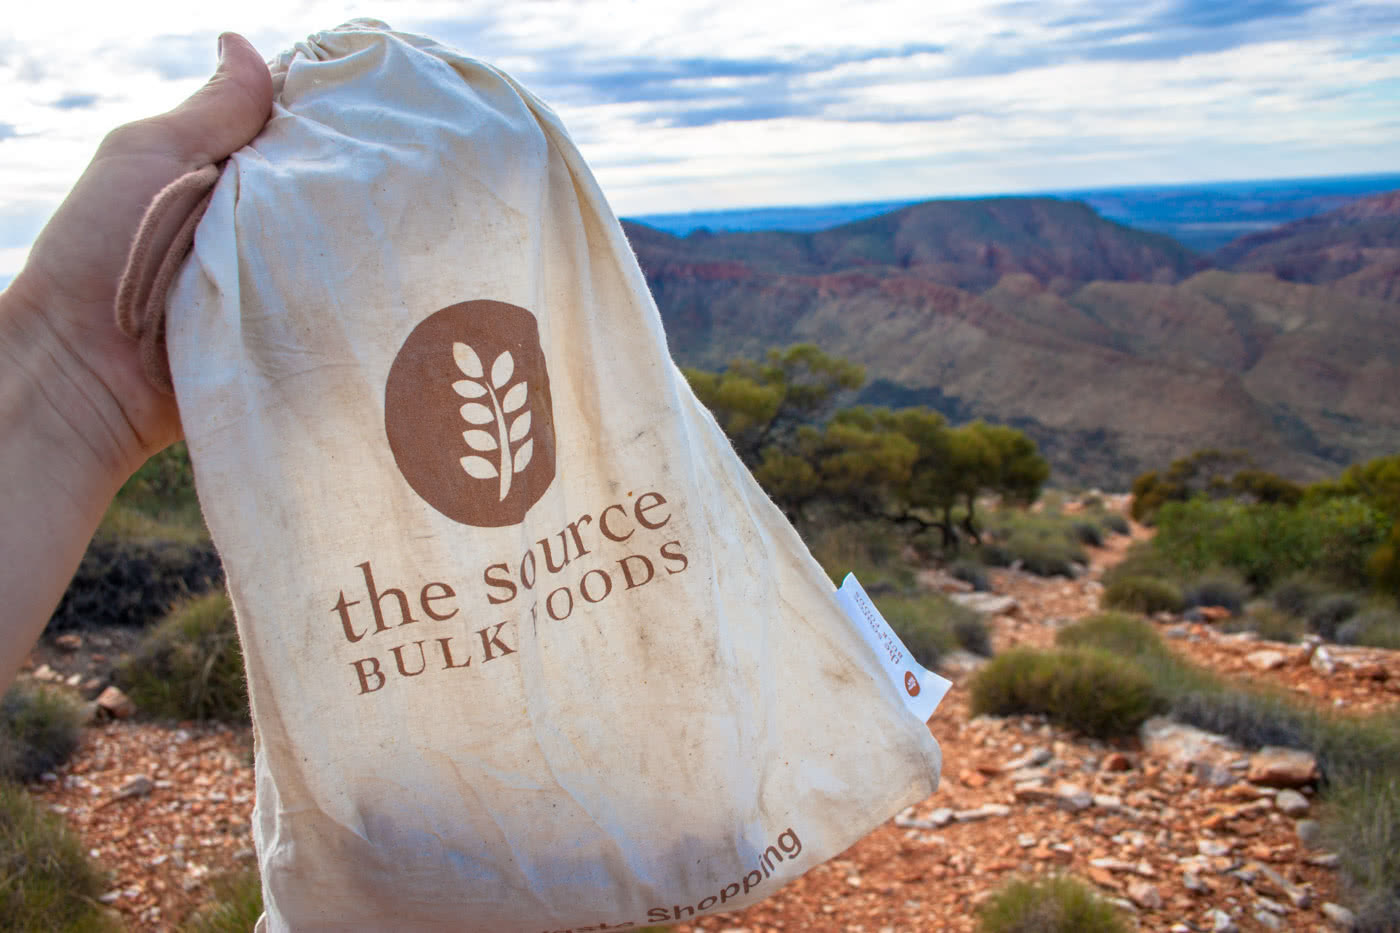 Plastic Free Hiking, Caitlin Weatherstone, hiker, track, Larapinta Trail, bulk foods, cotton bag, the source, hiking food